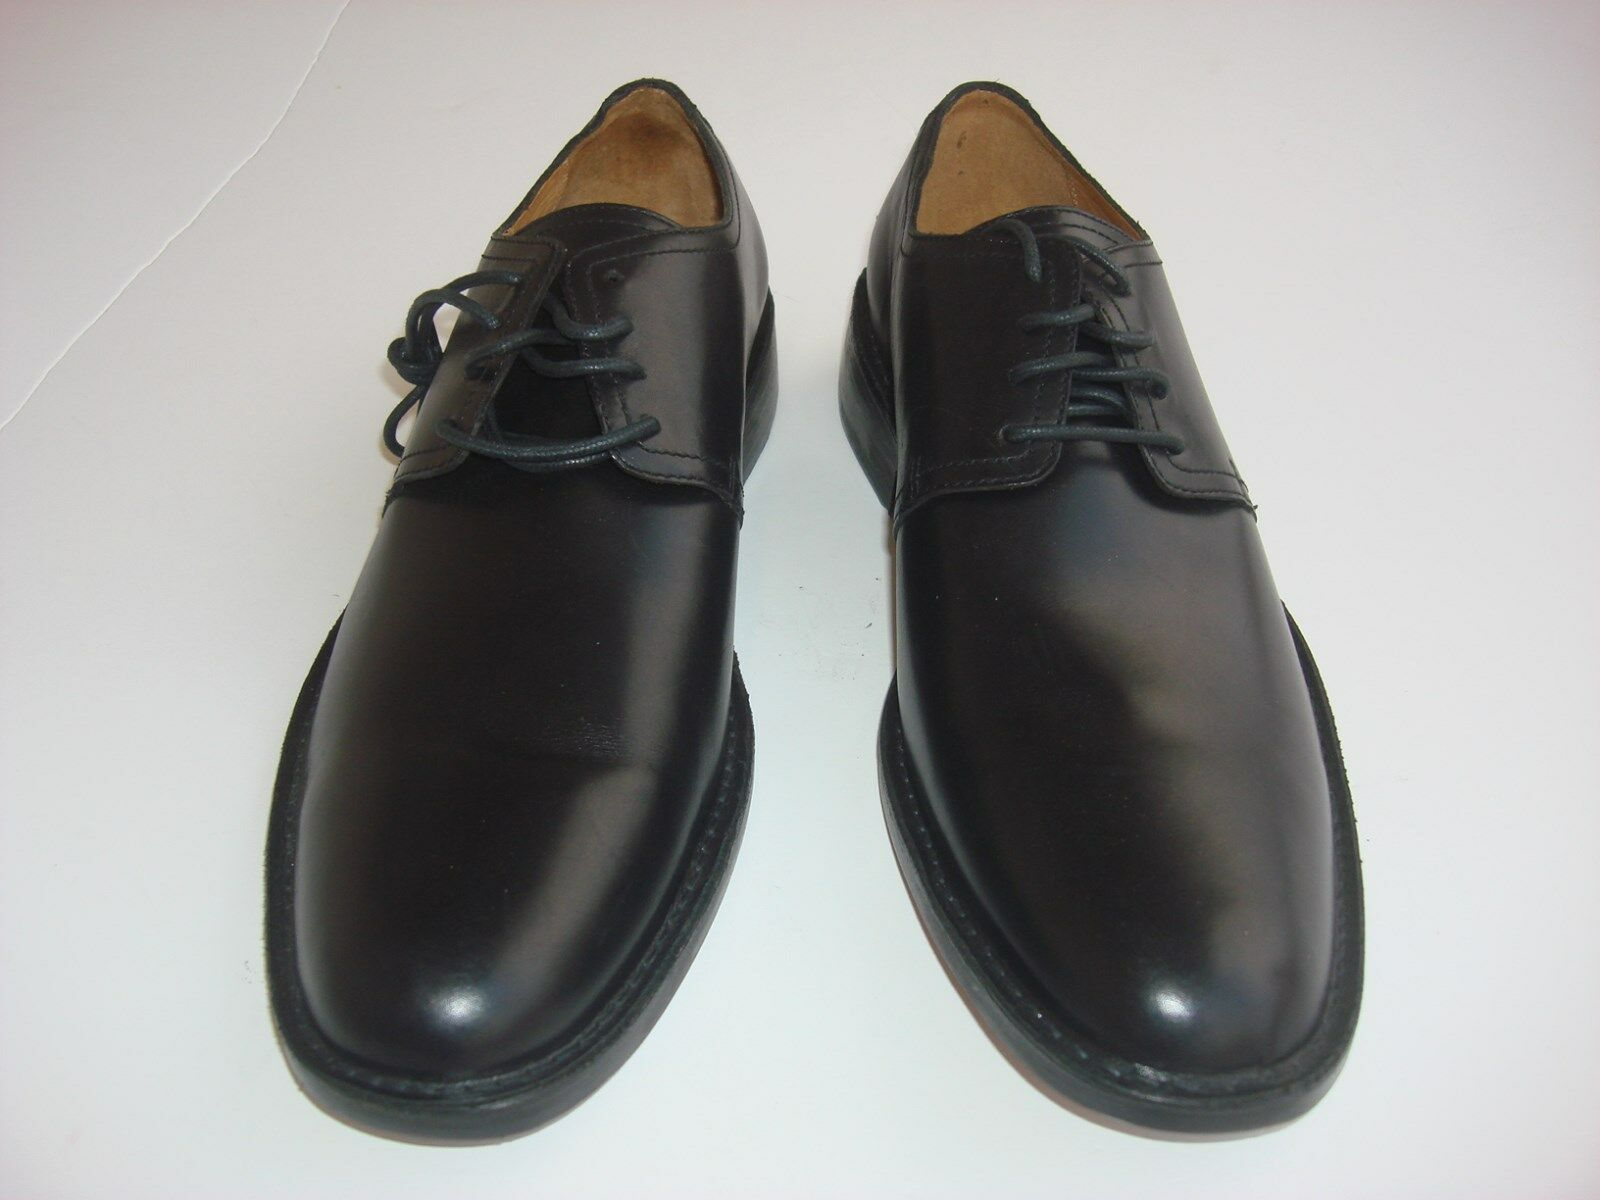 COLE HAAN® SHOES - CLASSIC & STYLISH Price reduction CO5411 - NEW  Brand discount